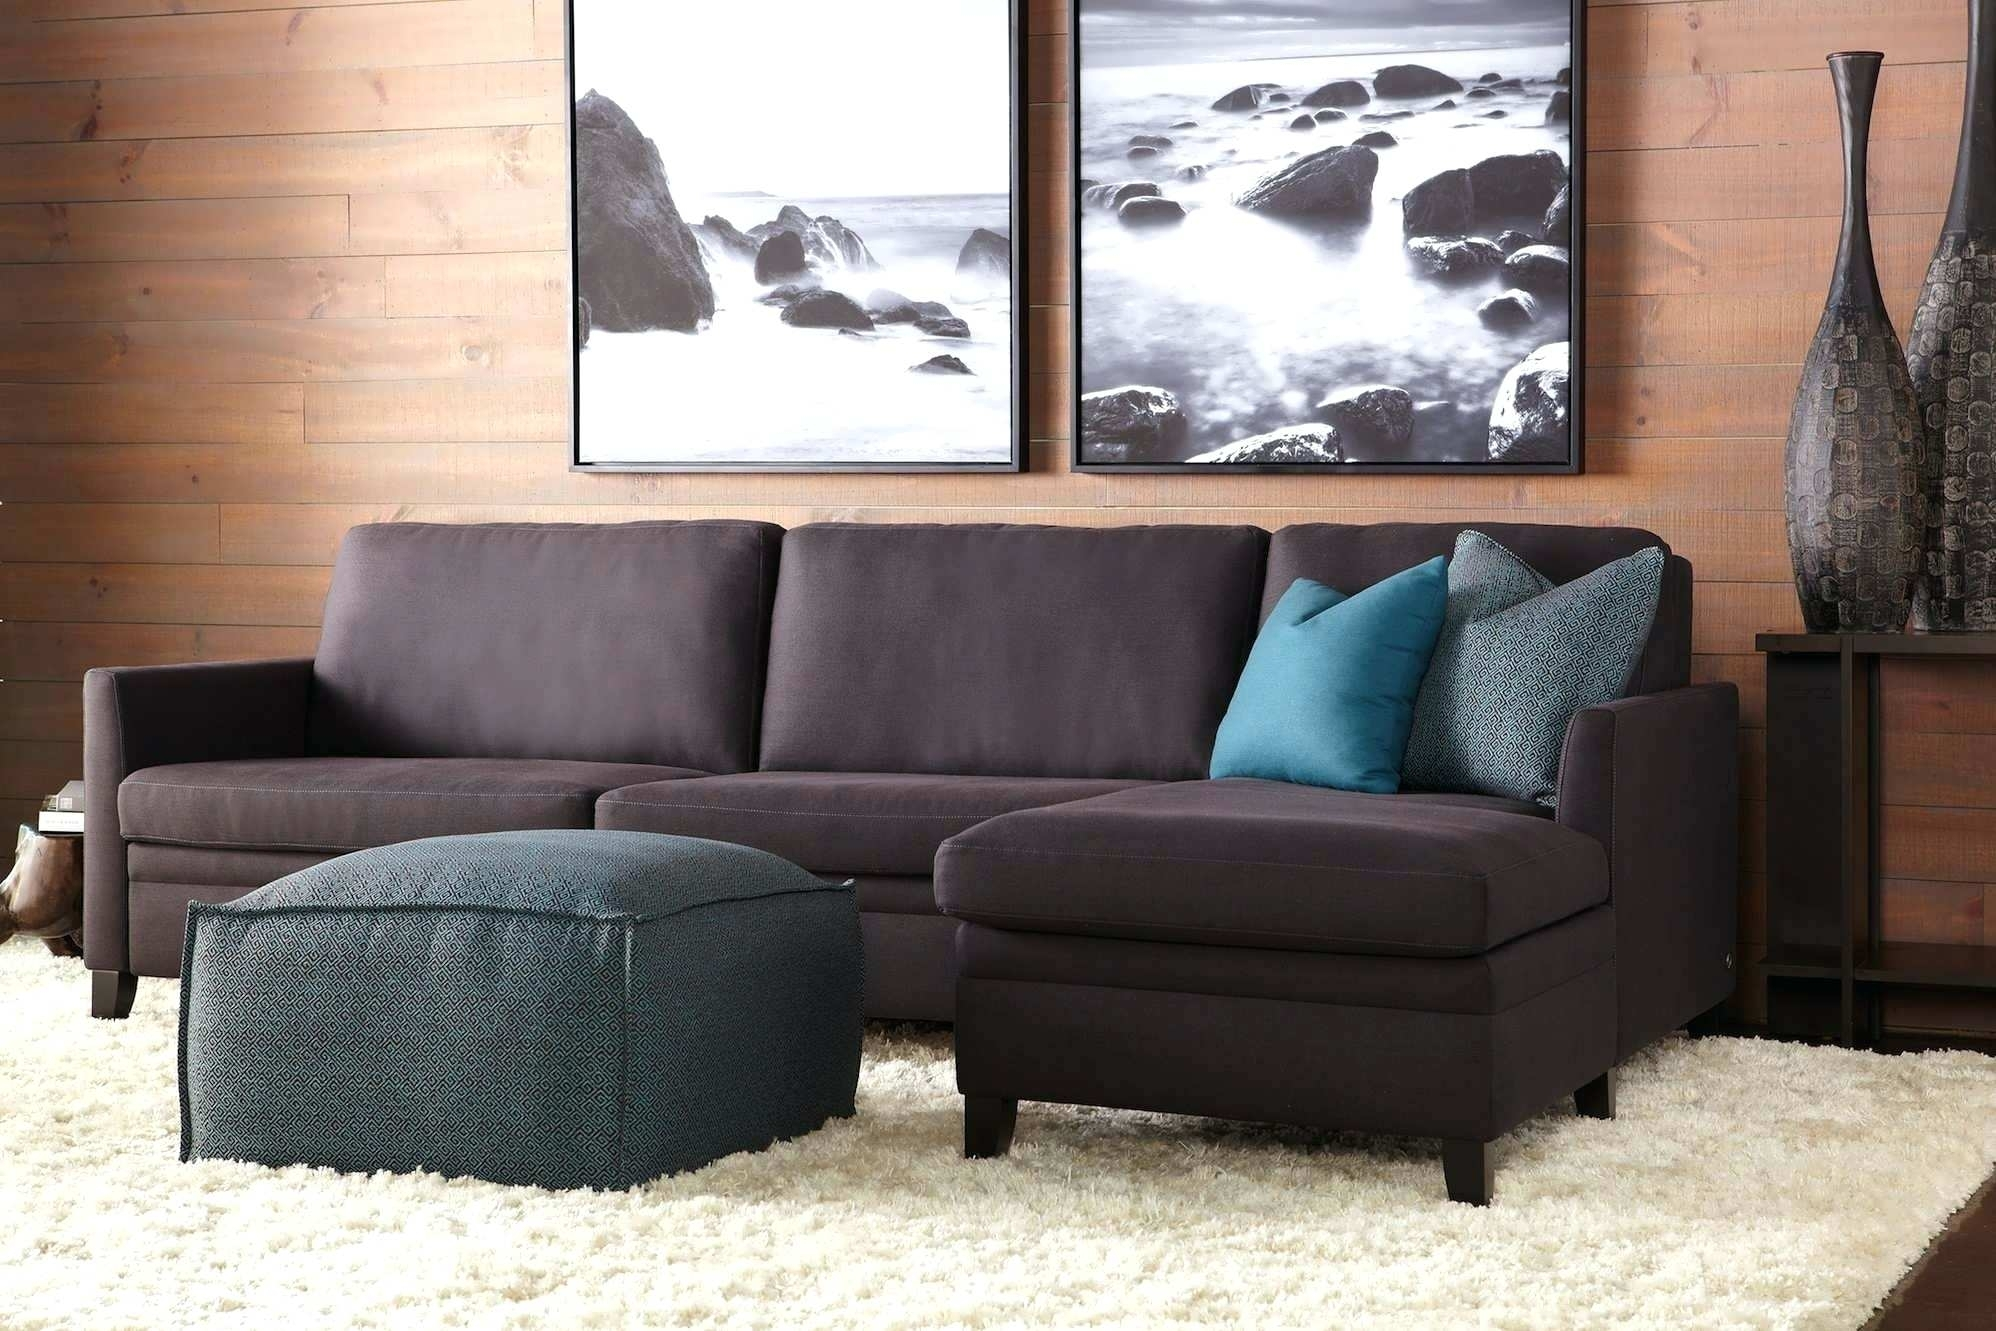 Beautiful Sectional Sofa For Sale (35 Photos) | Clubanfi Throughout Grande Prairie Ab Sectional Sofas (Image 4 of 10)